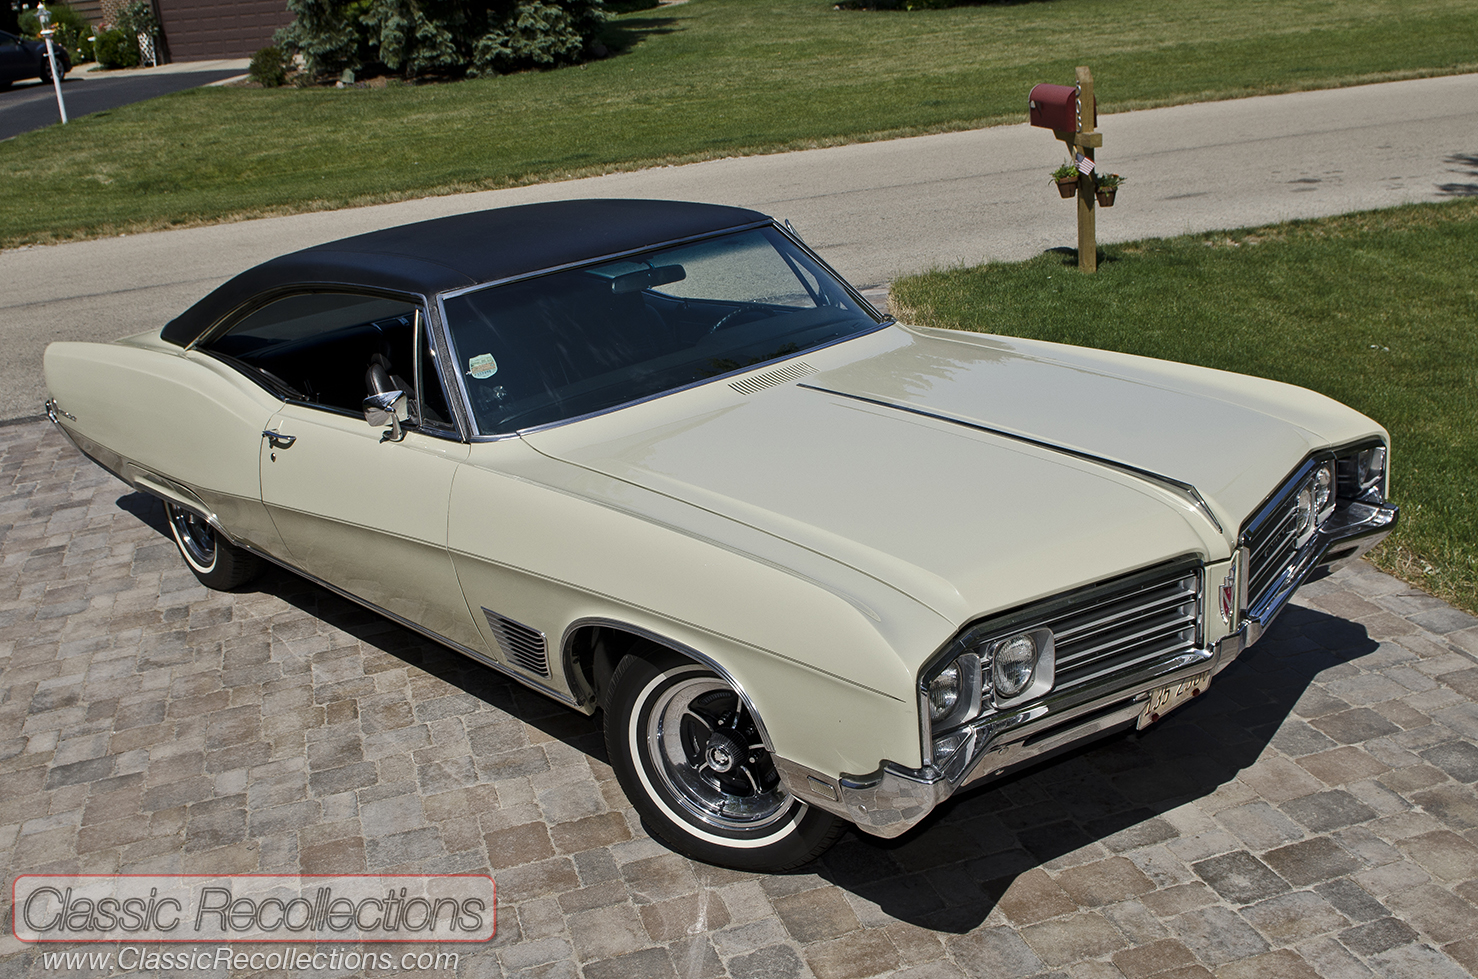 FEATURE 1968 Buick Wildcat Classic Recollections